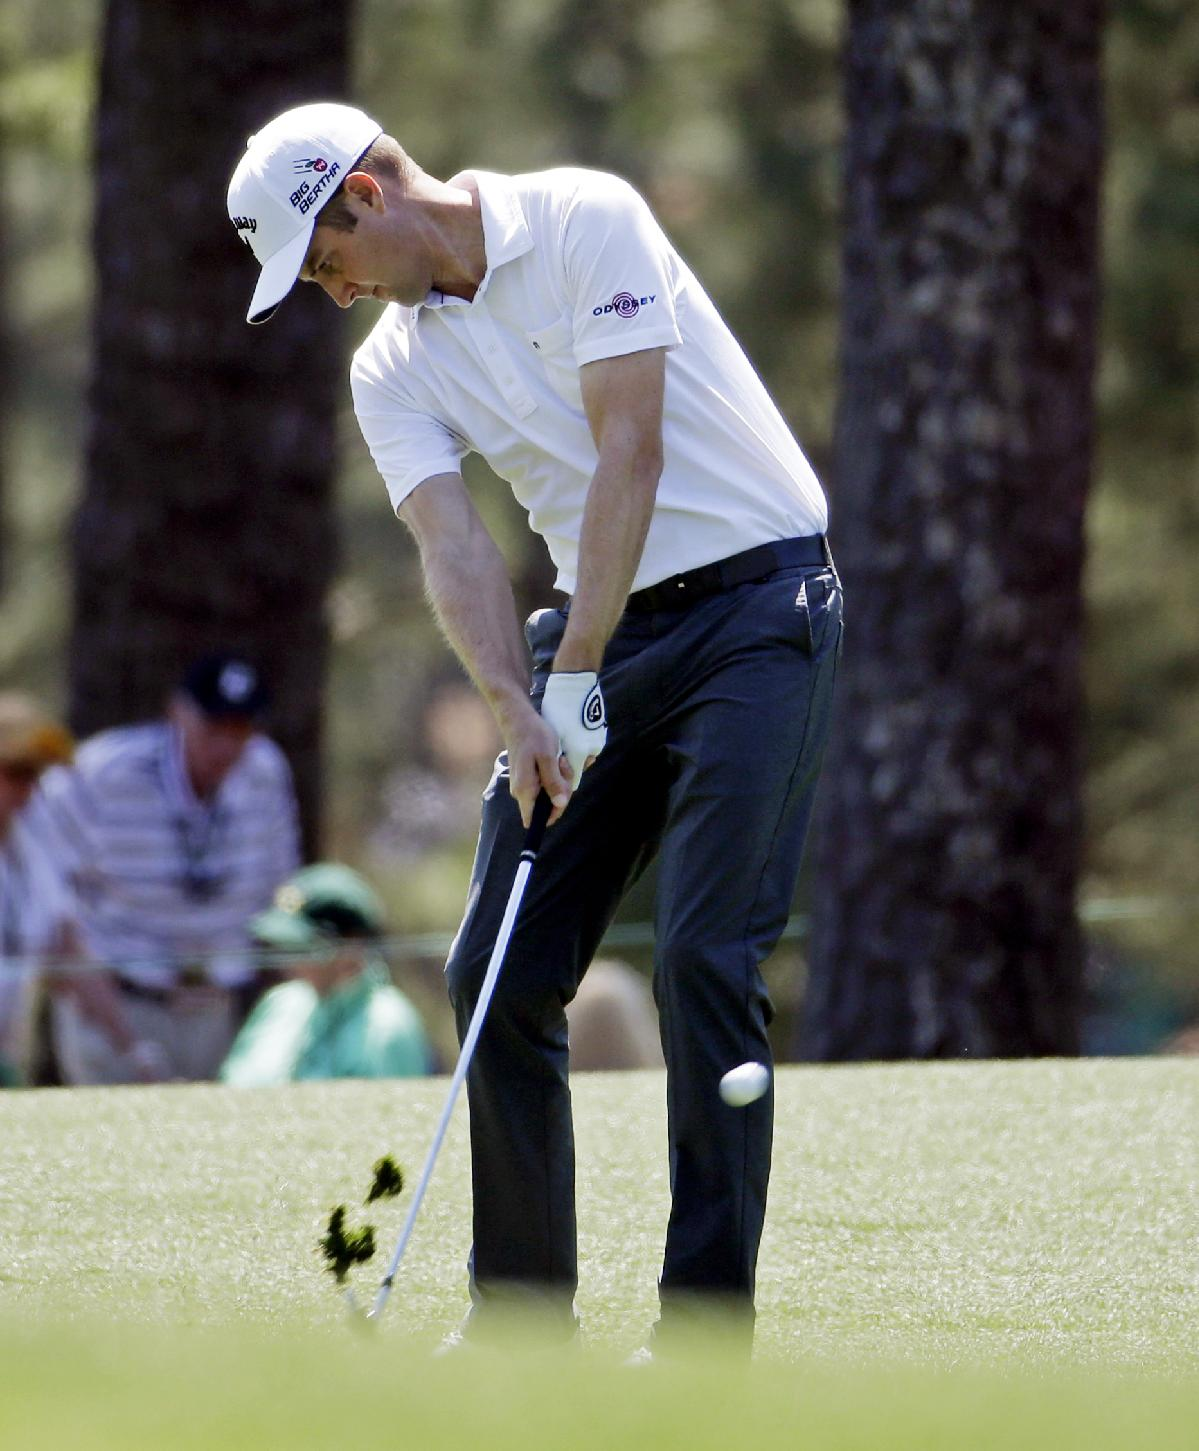 Chris Kirk hits off the first fairway during the first round of the Masters golf tournament Thursday, April 10, 2014, in Augusta, Ga